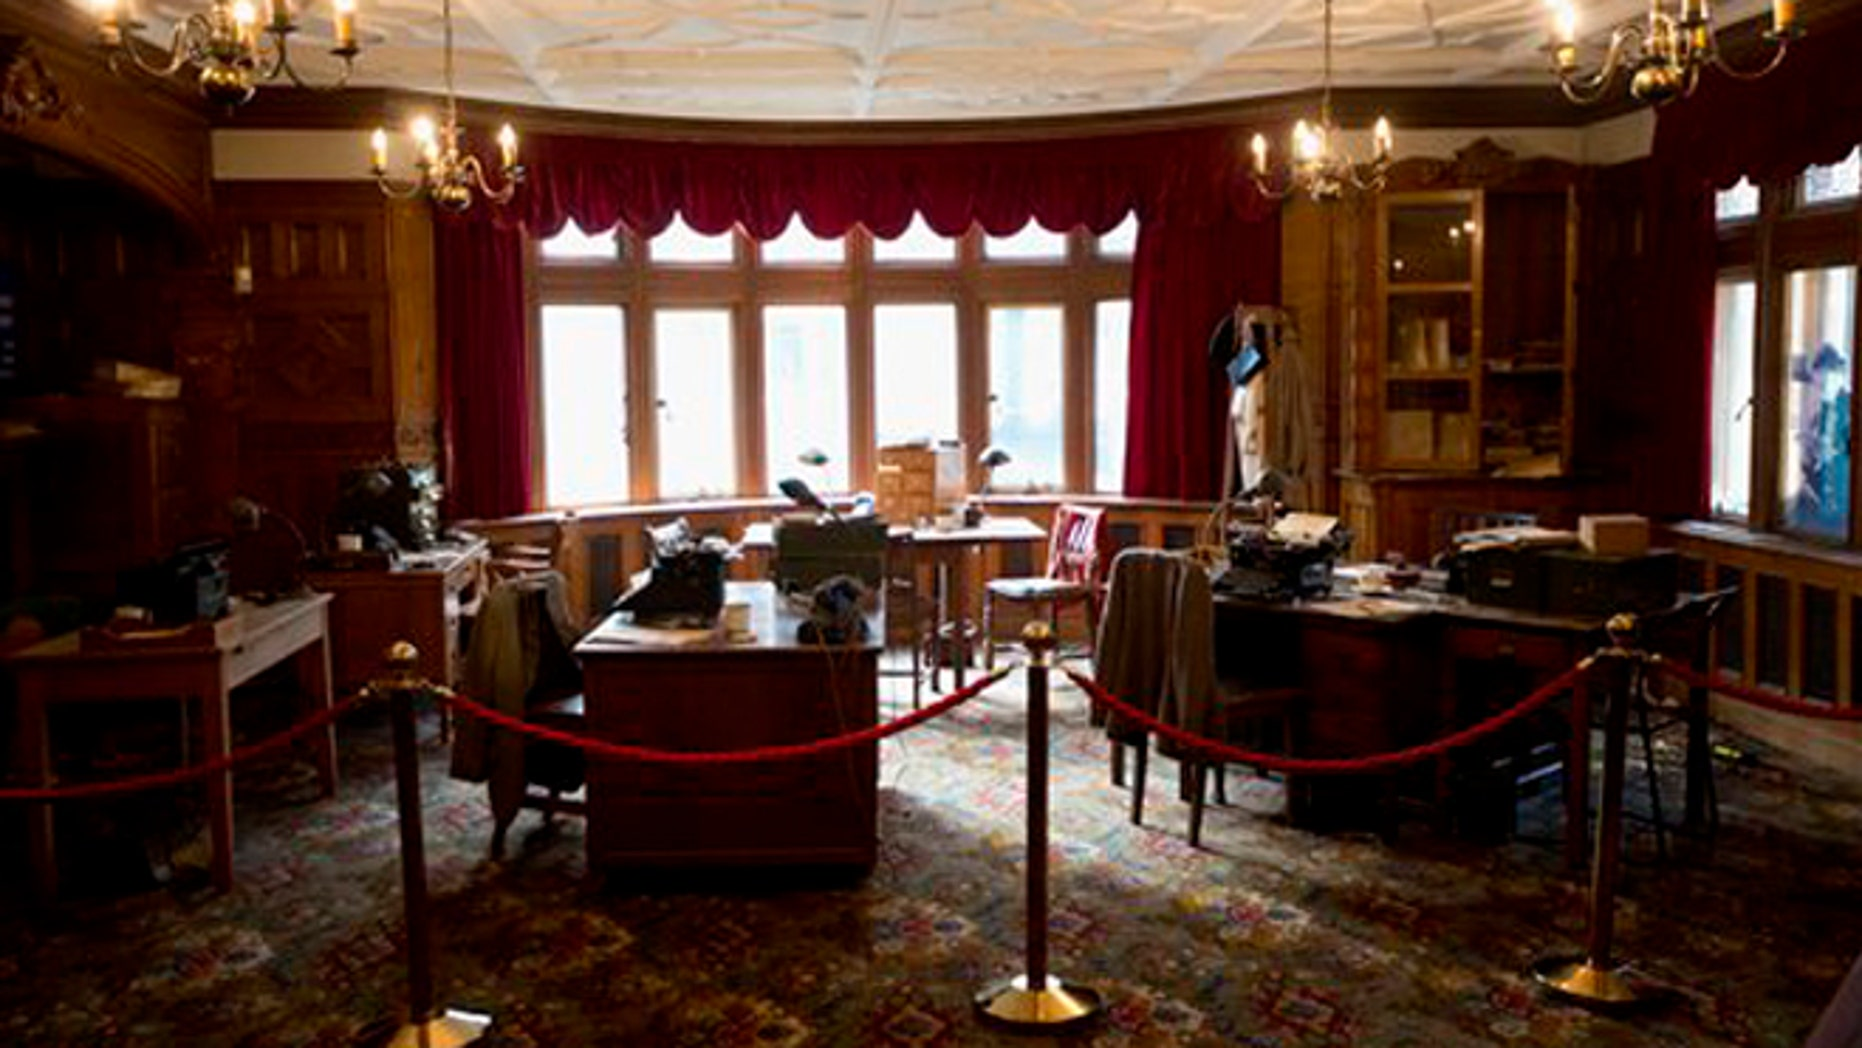 In photo dated Thursday, Jan. 15, 2015, a library exhibit at Bletchley Park, as it would have been used by infamous codebreaker Alan Turing during World War II, in Bletchley, England. (AP Photo/Matt Dunham)